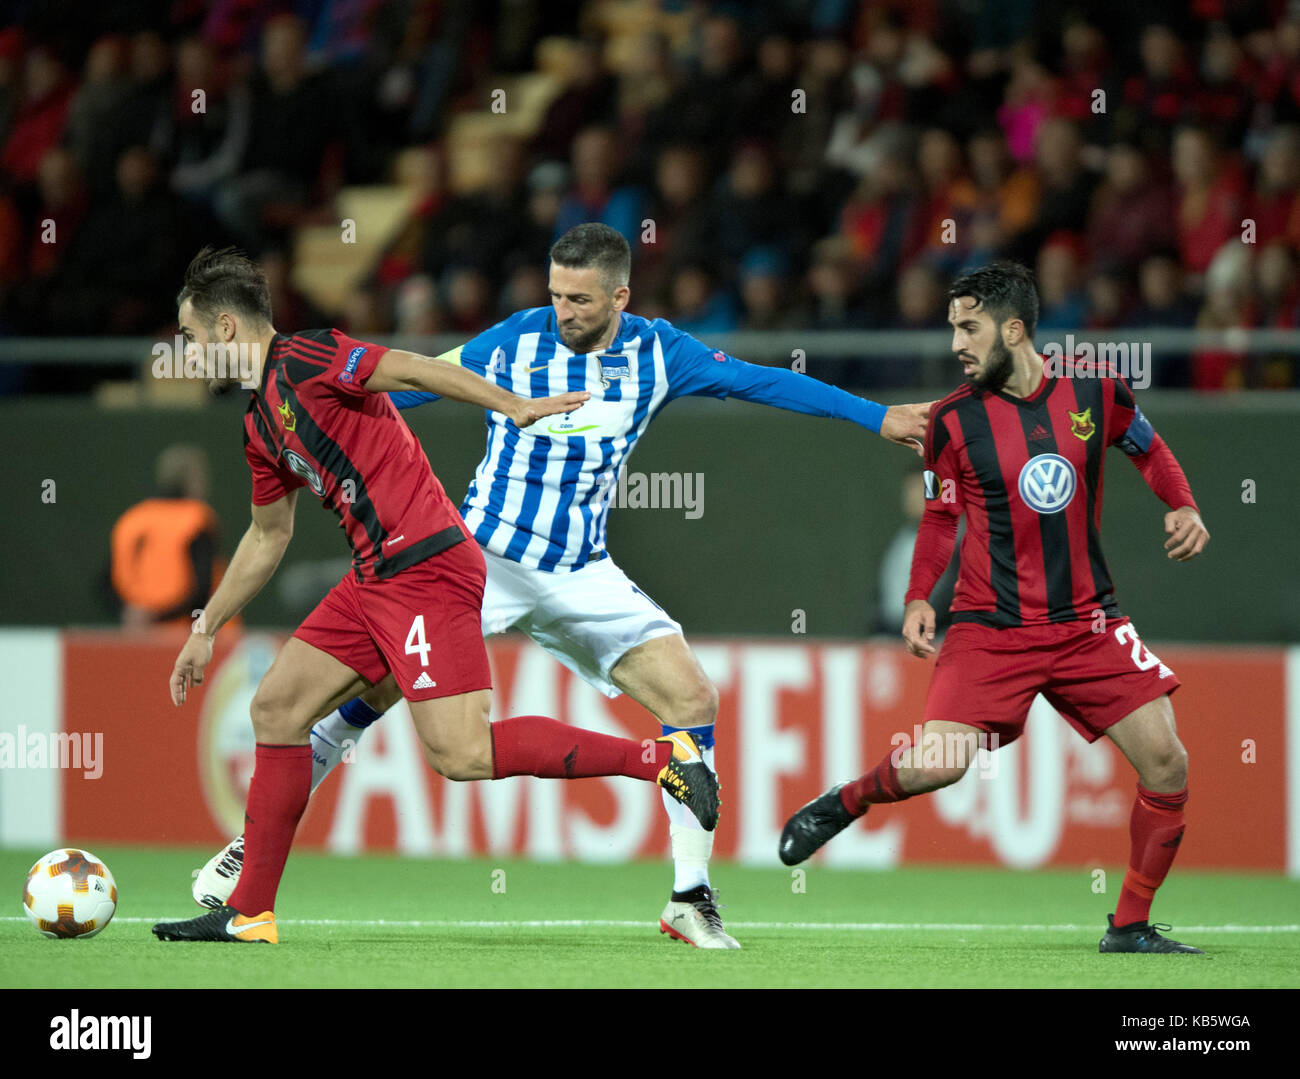 Ostersund, Sweden. 28th Sep, 2017. Berlin's Vedad Ibisevic (M) and Ostersunds Sotirios Papagiannopoulus (L) as well as Brwa Nouri vie for the ball during the Europa League match between Ostersunds FK and Hertha BSC at the Jaemtkraft Arena in Ostersund, Sweden, 28 September 2017. Credit: Soeren Stache/dpa/Alamy Live News Stock Photo